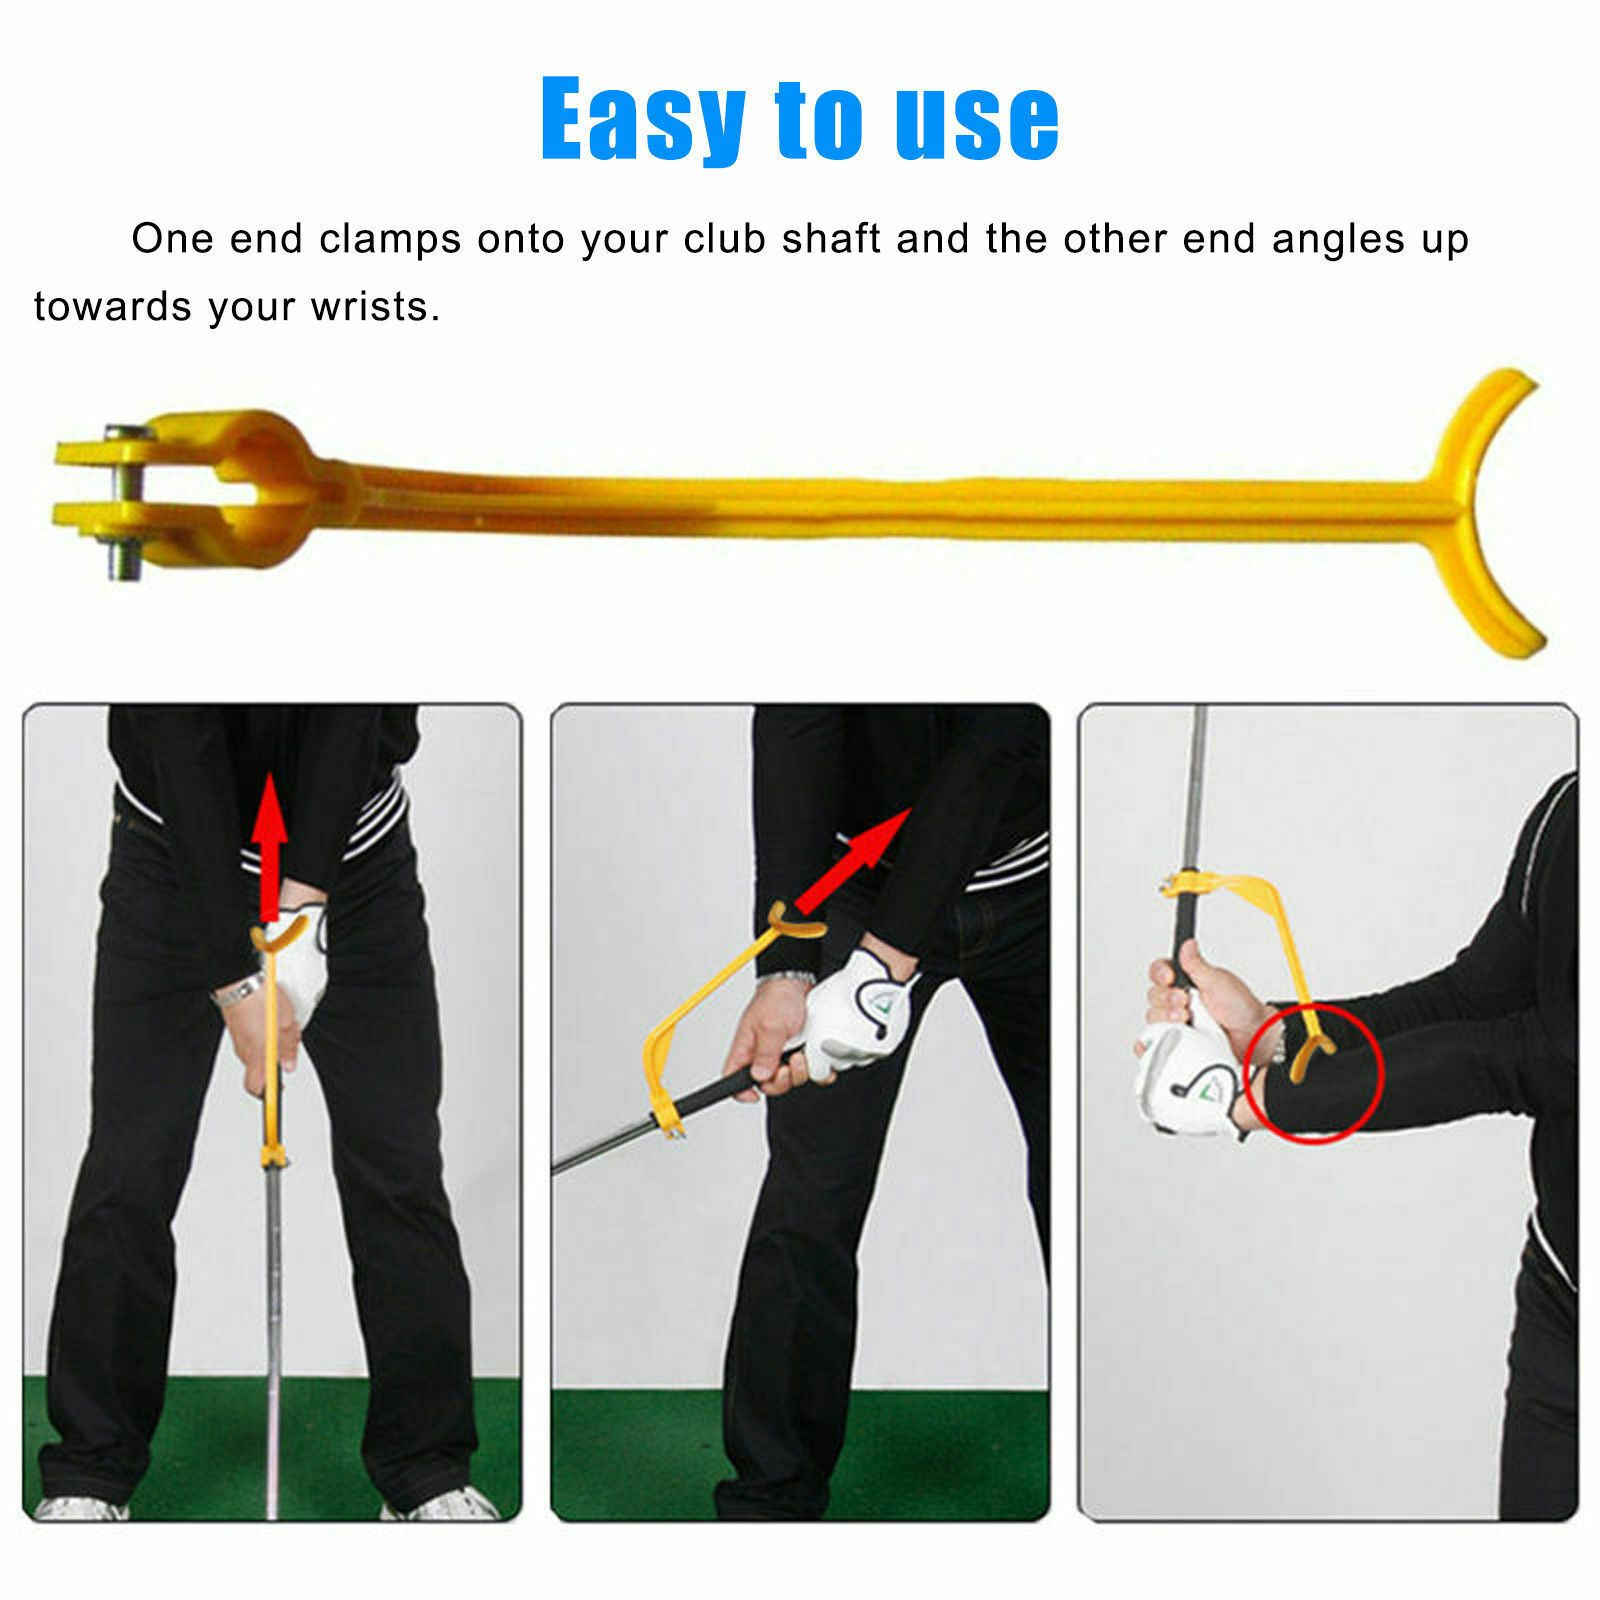 Golf Swing Swinging Tool - Golf Alignment Training Aid - The Golfing Eagles